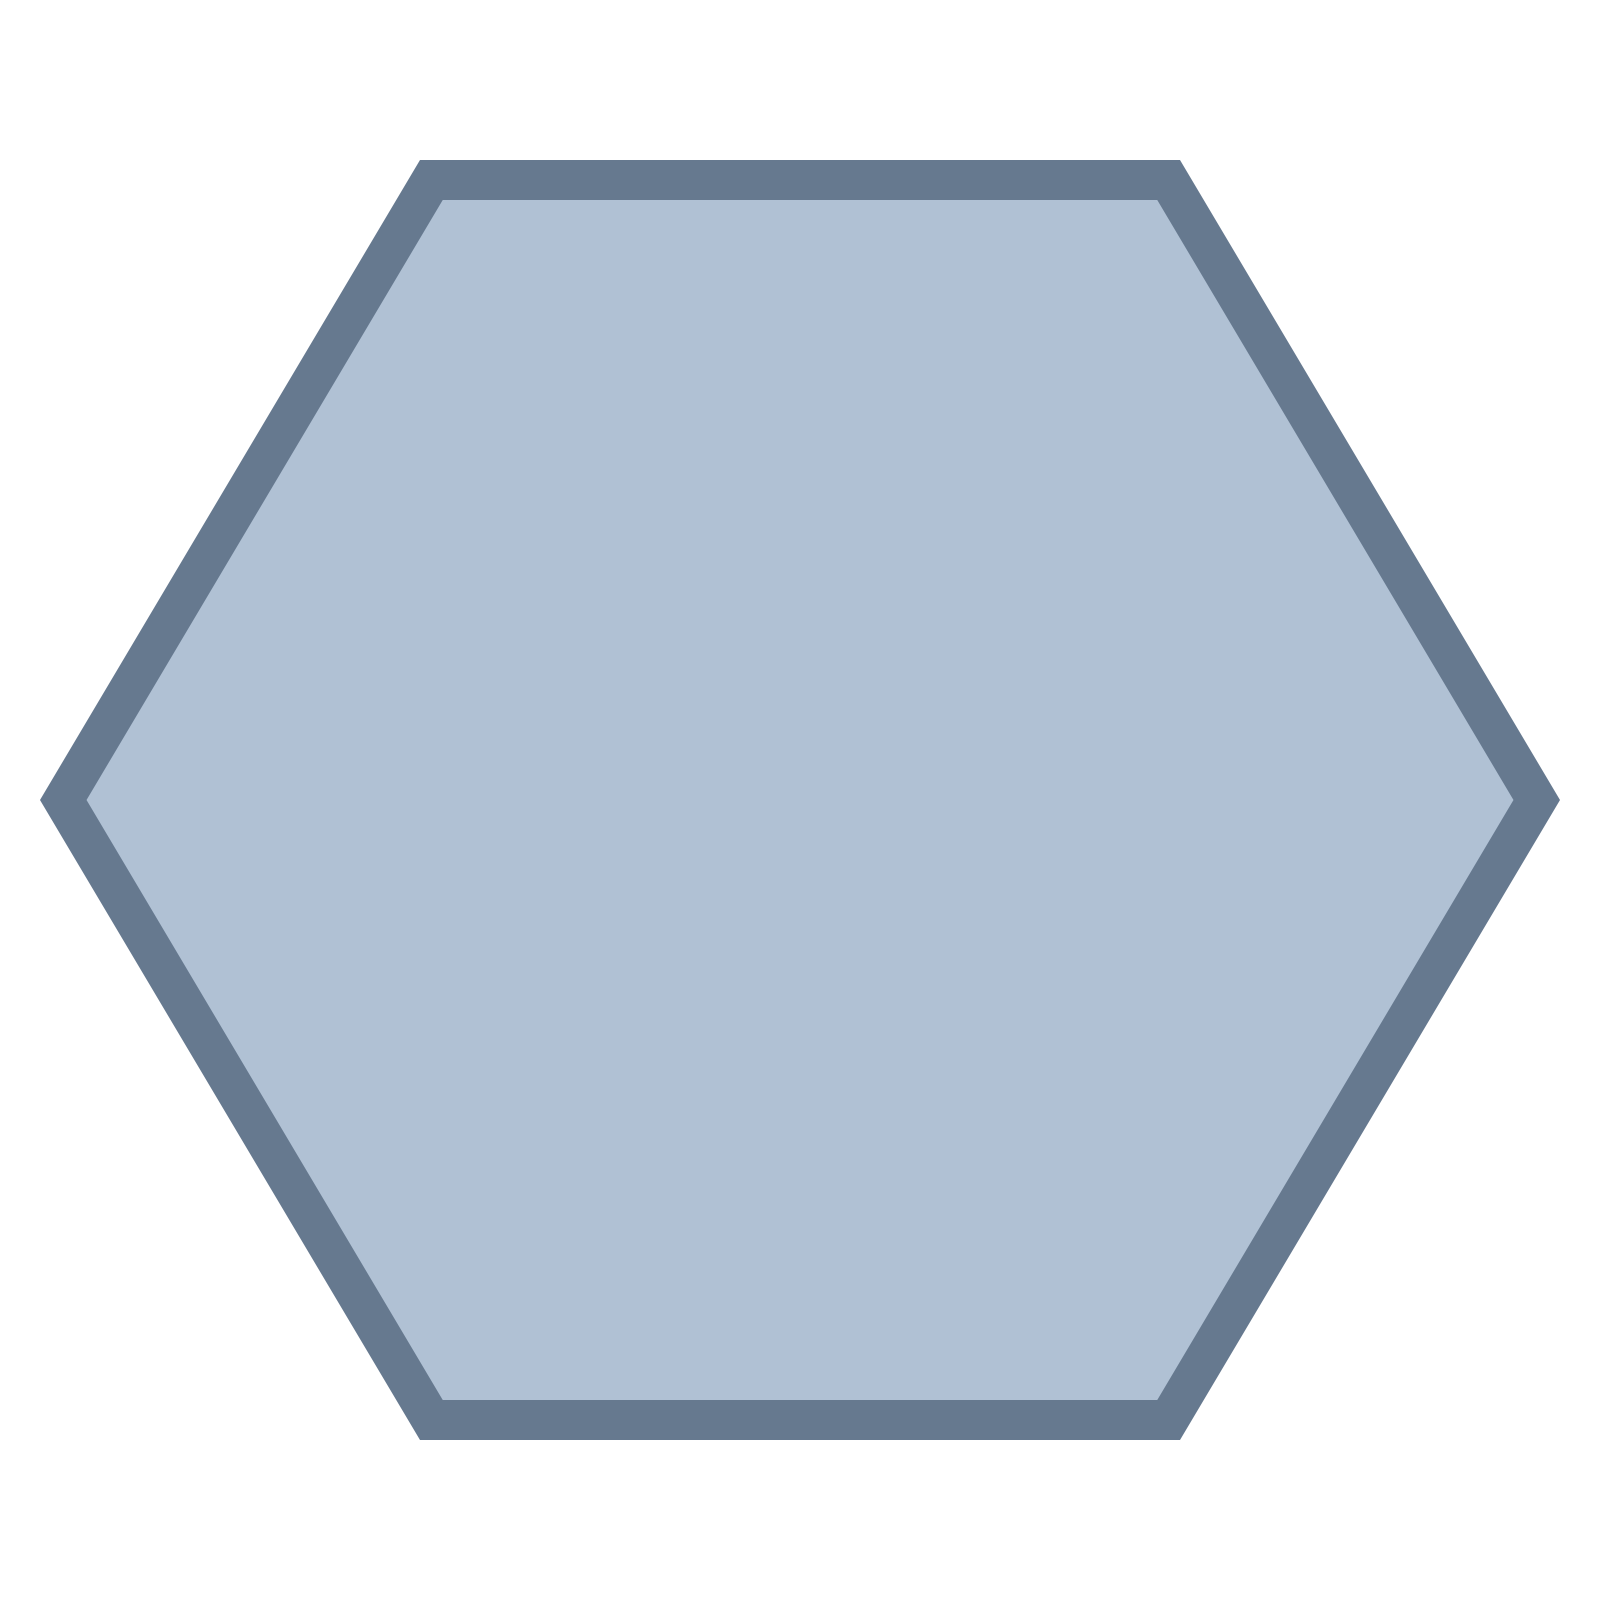 PNG Hexagon Shape - 53353